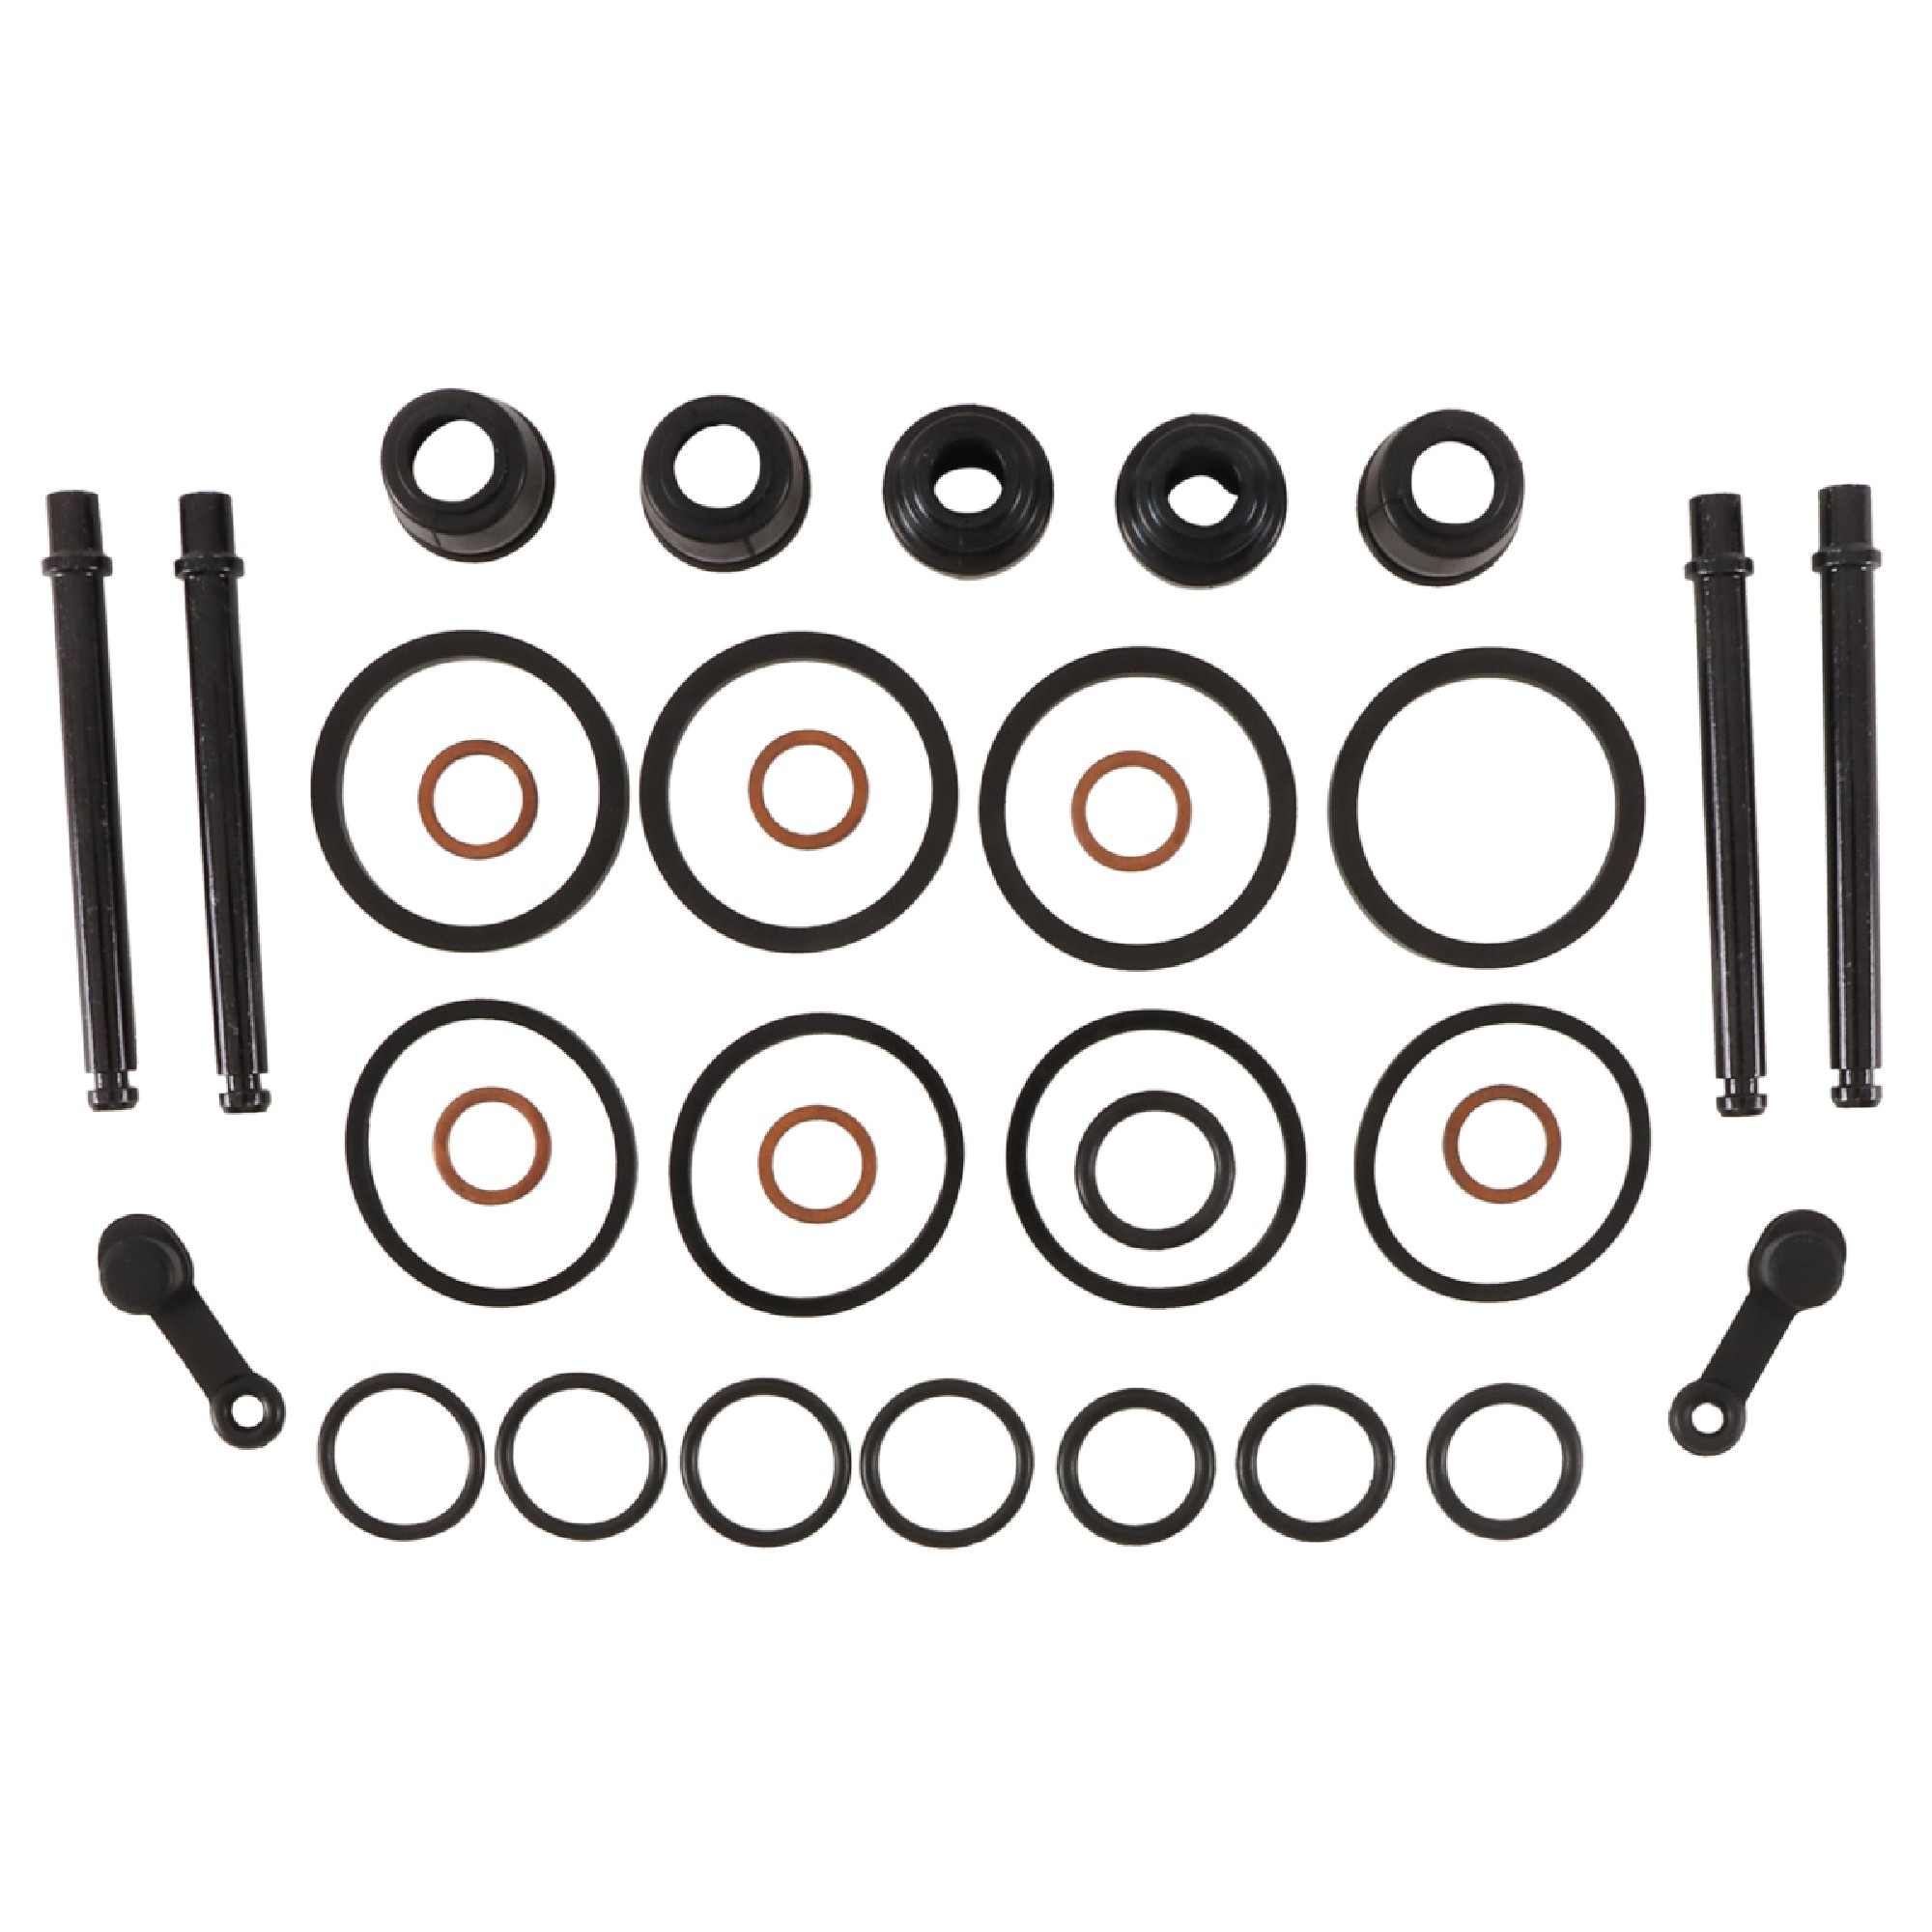 New Front Caliper Rebuild Kit for Honda CB 750 C Custom 82